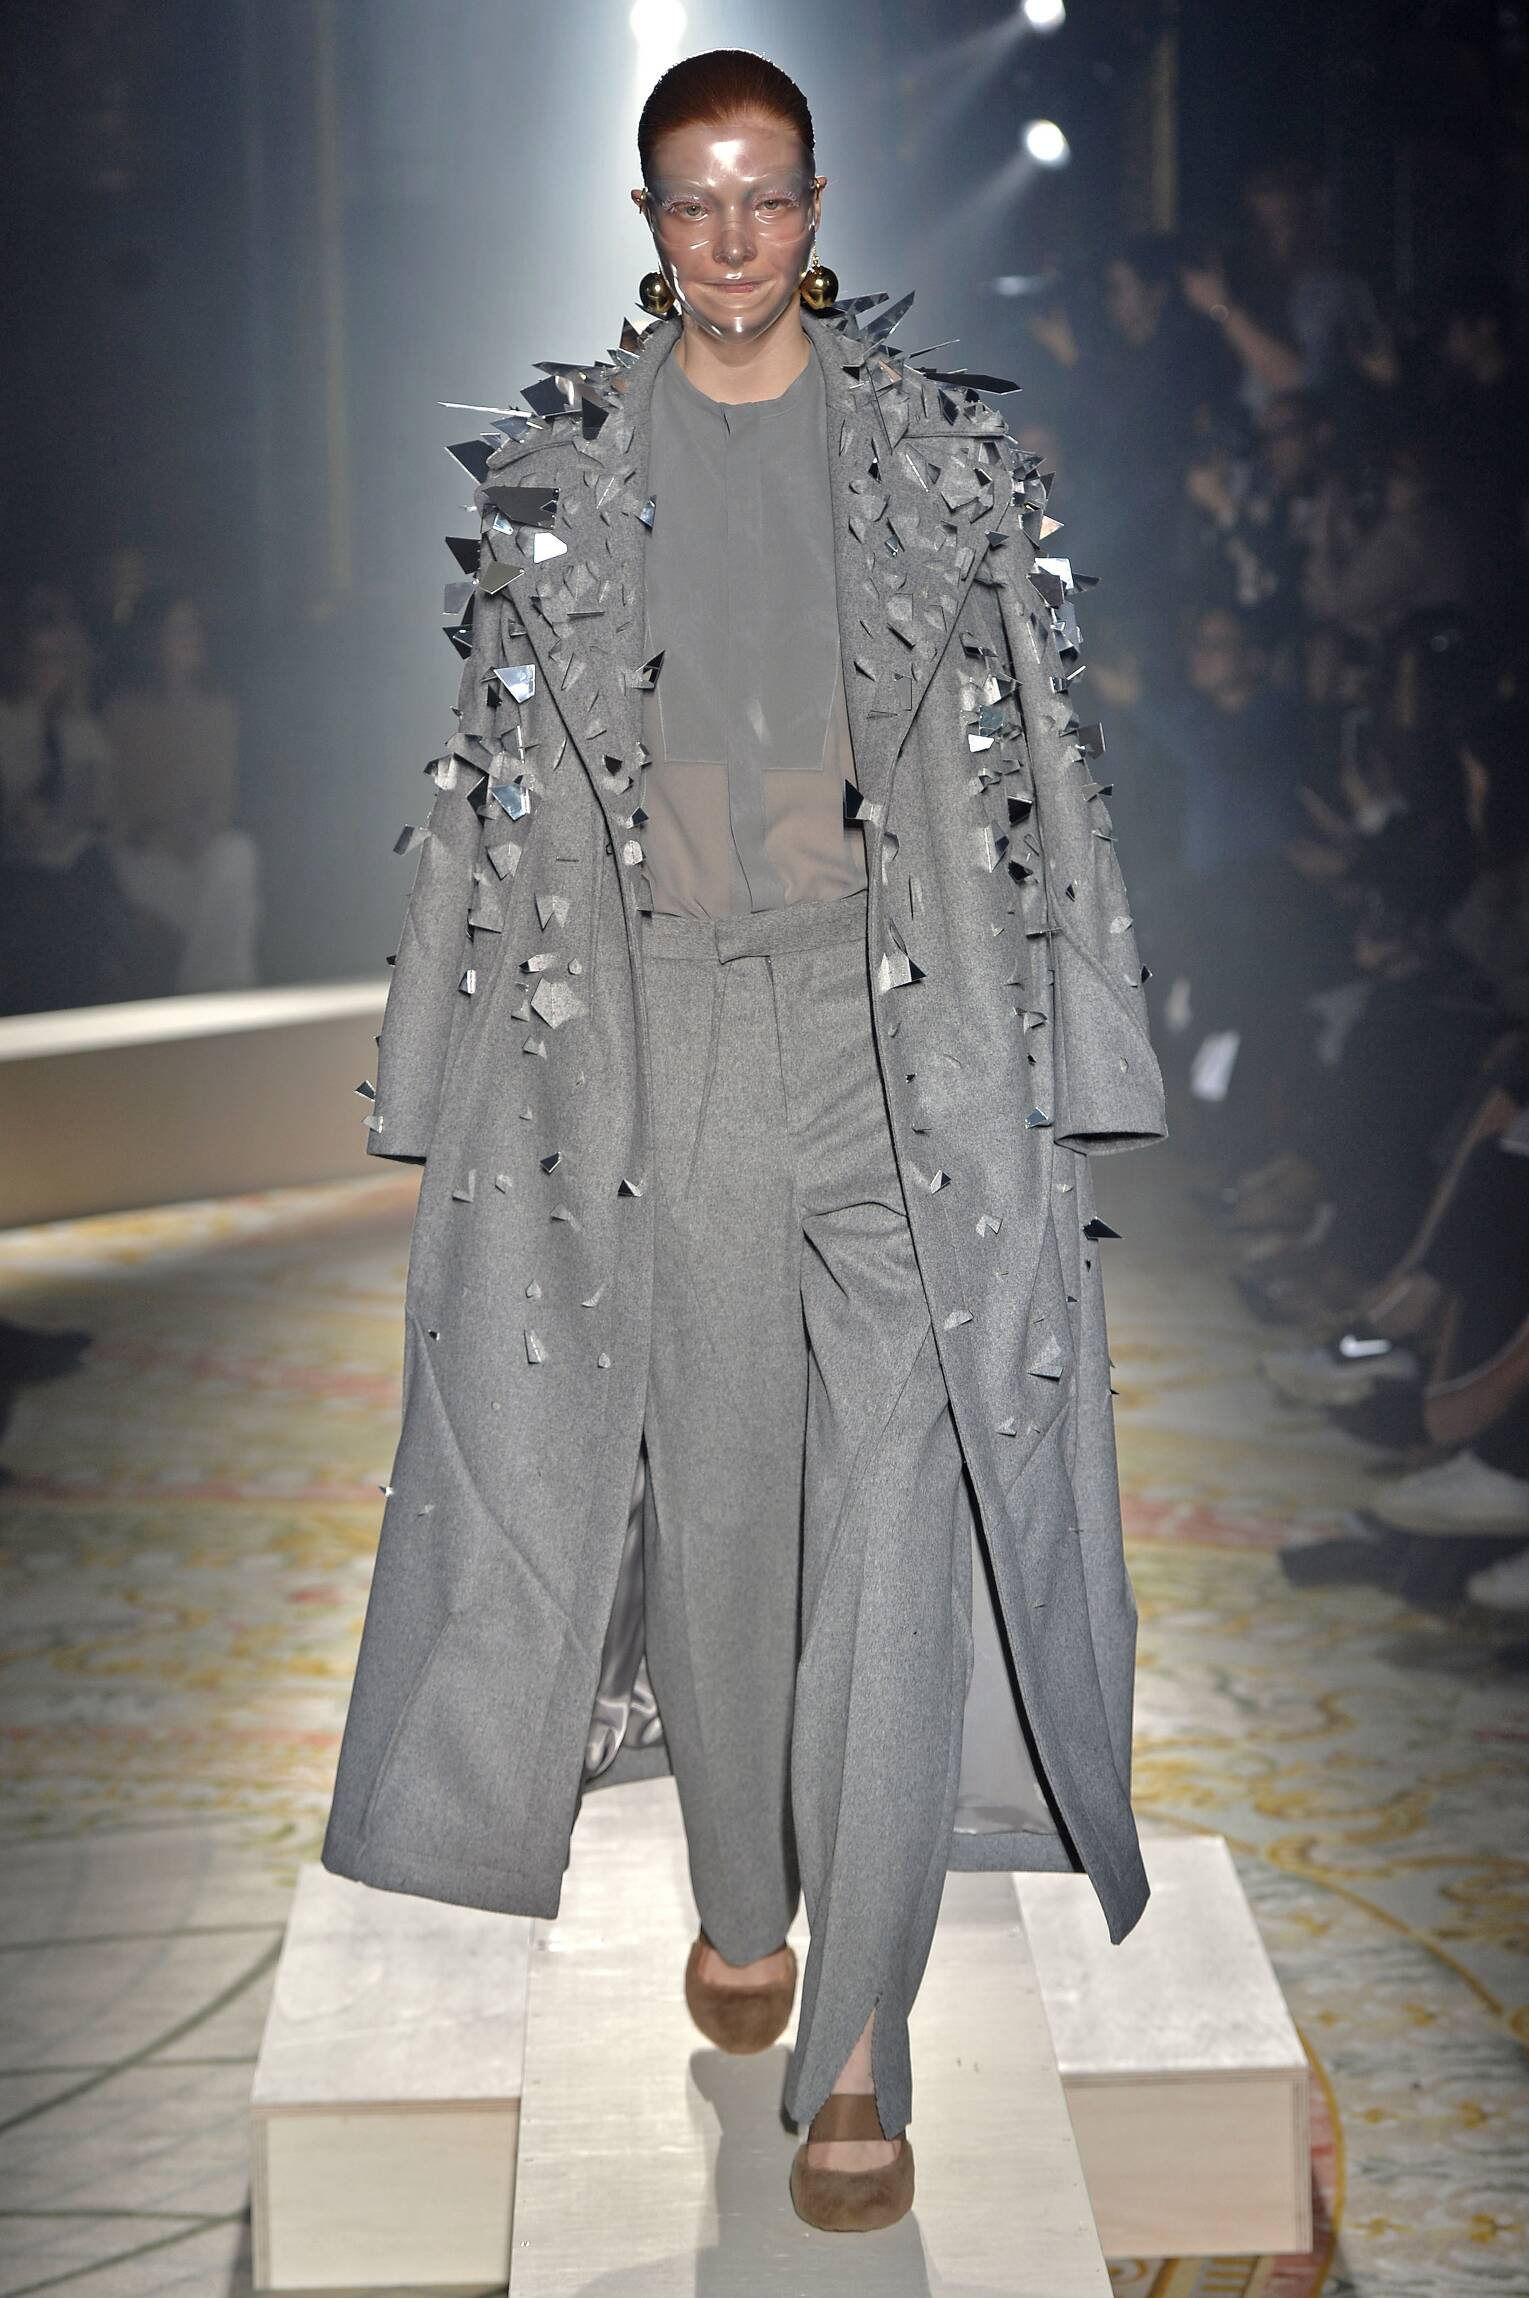 Fashion Show FW 2015 2016 Undercover Womenswear